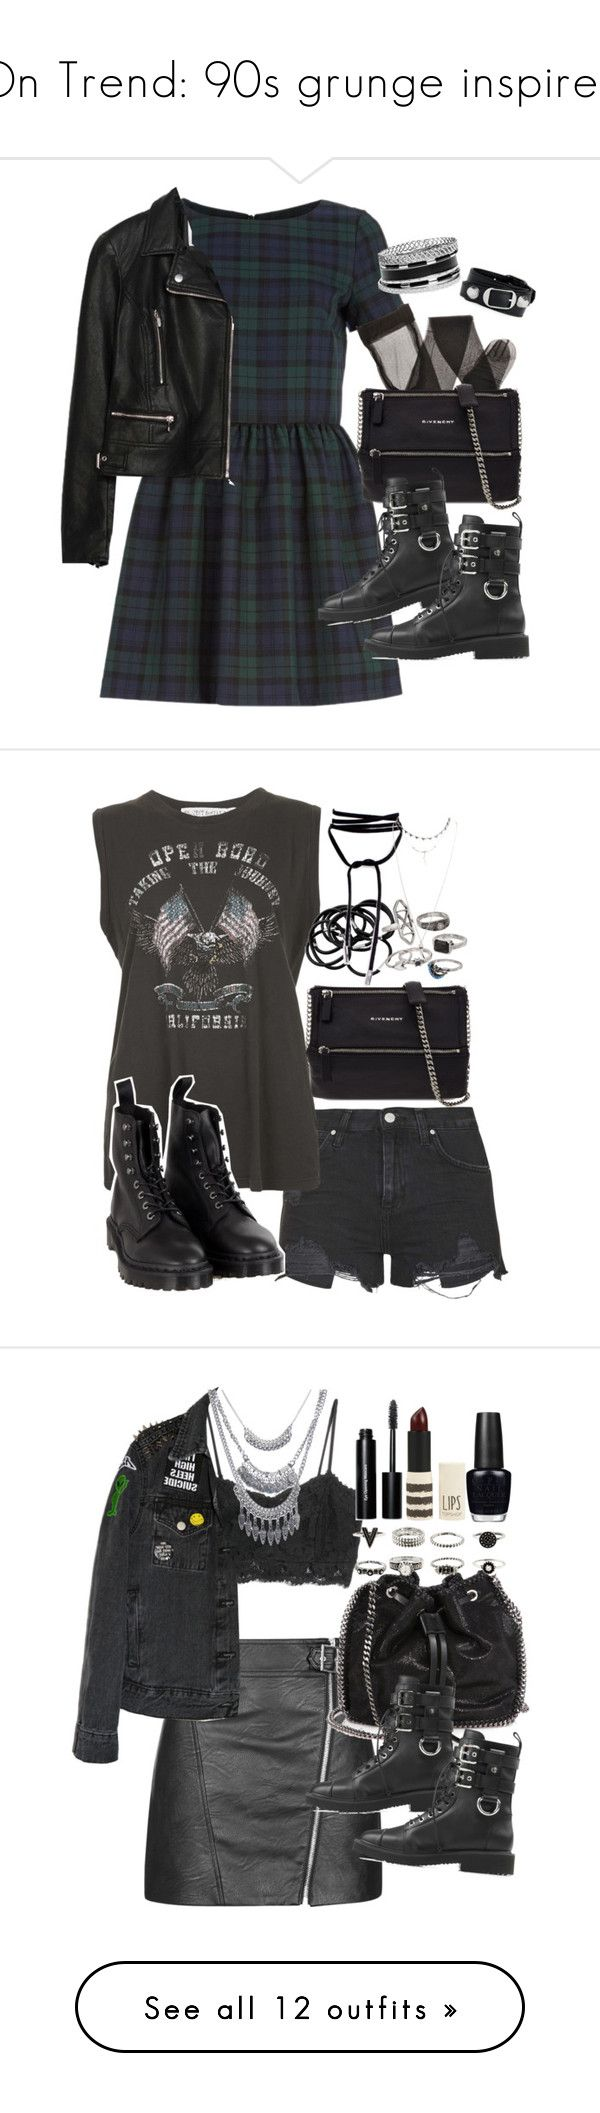 """On Trend: 90s grunge inspired"" by ferned ❤ liked on Polyvore featuring River Island, Zara, Givenchy, Giuseppe Zanotti, GUESS, Balenciaga, Topshop, Project Social T, Dr. Martens and H&M"